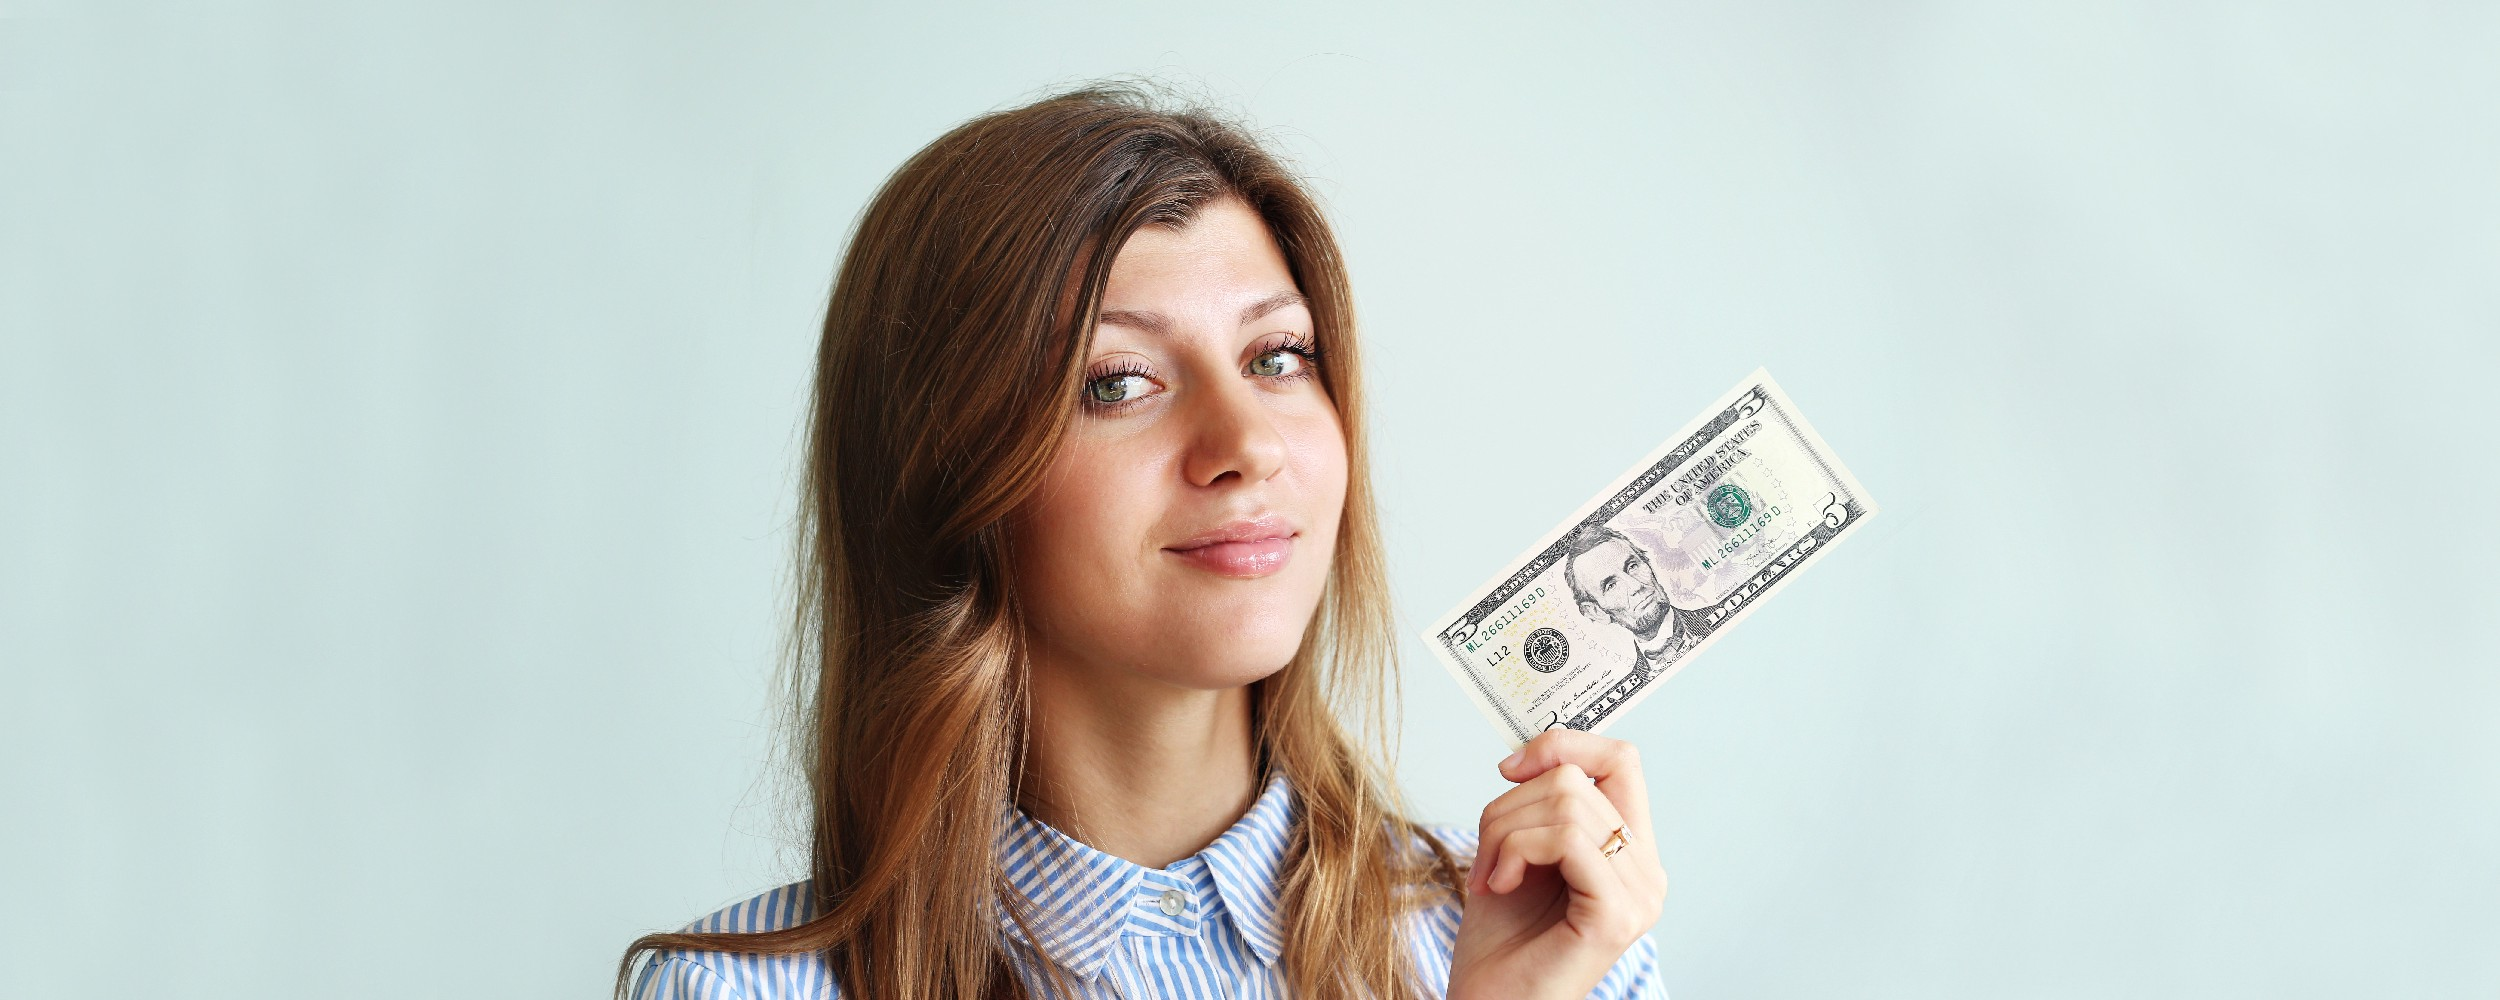 Woman holding five dollar bill